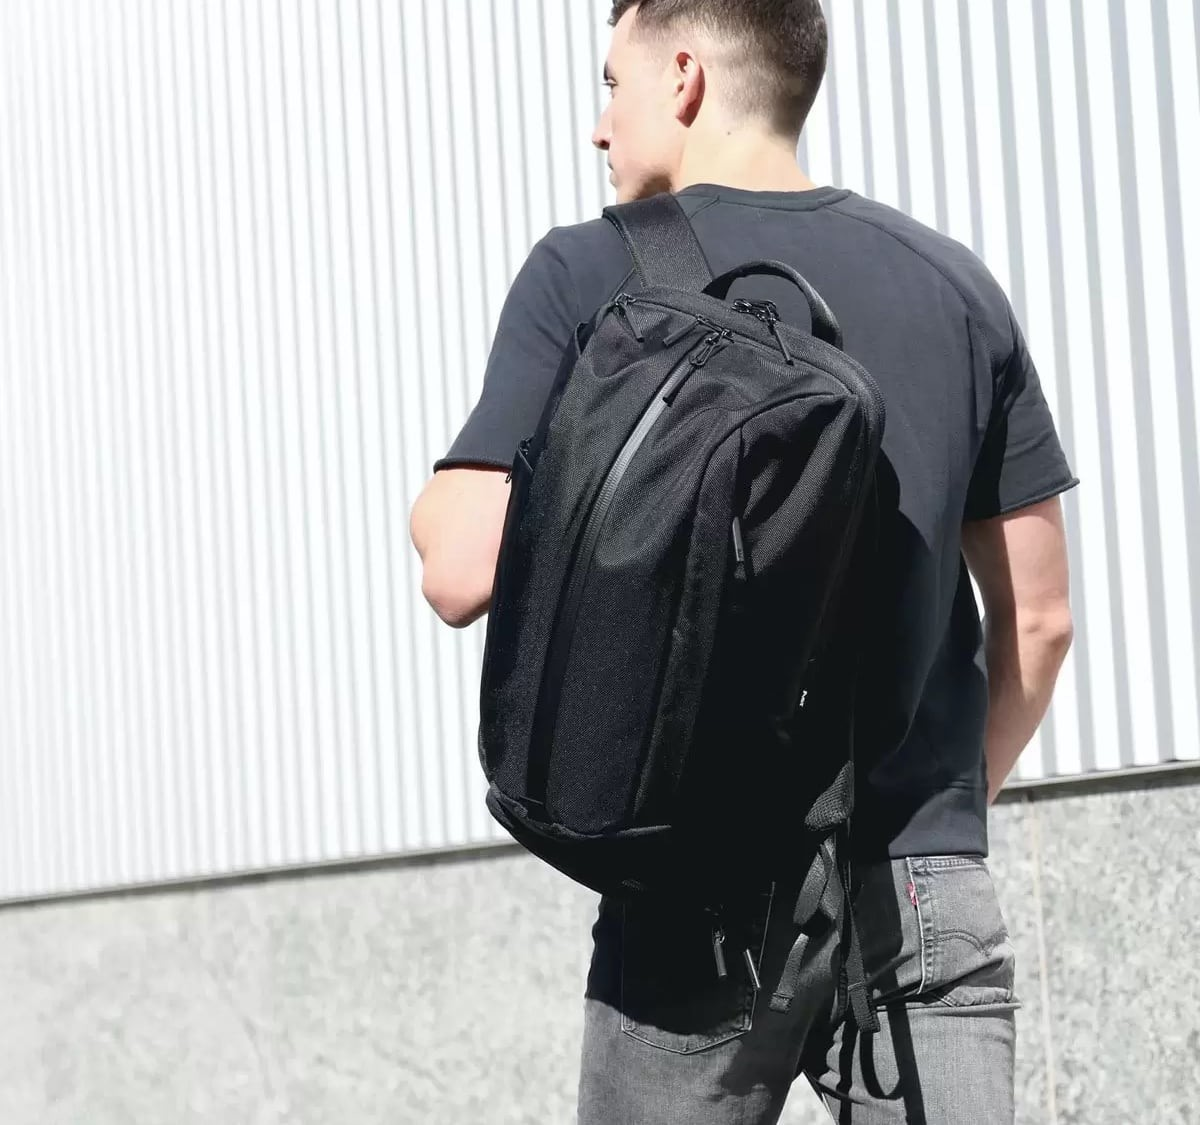 Aer Duffel Pack 2 Gym Backpack has convenient storage compartments